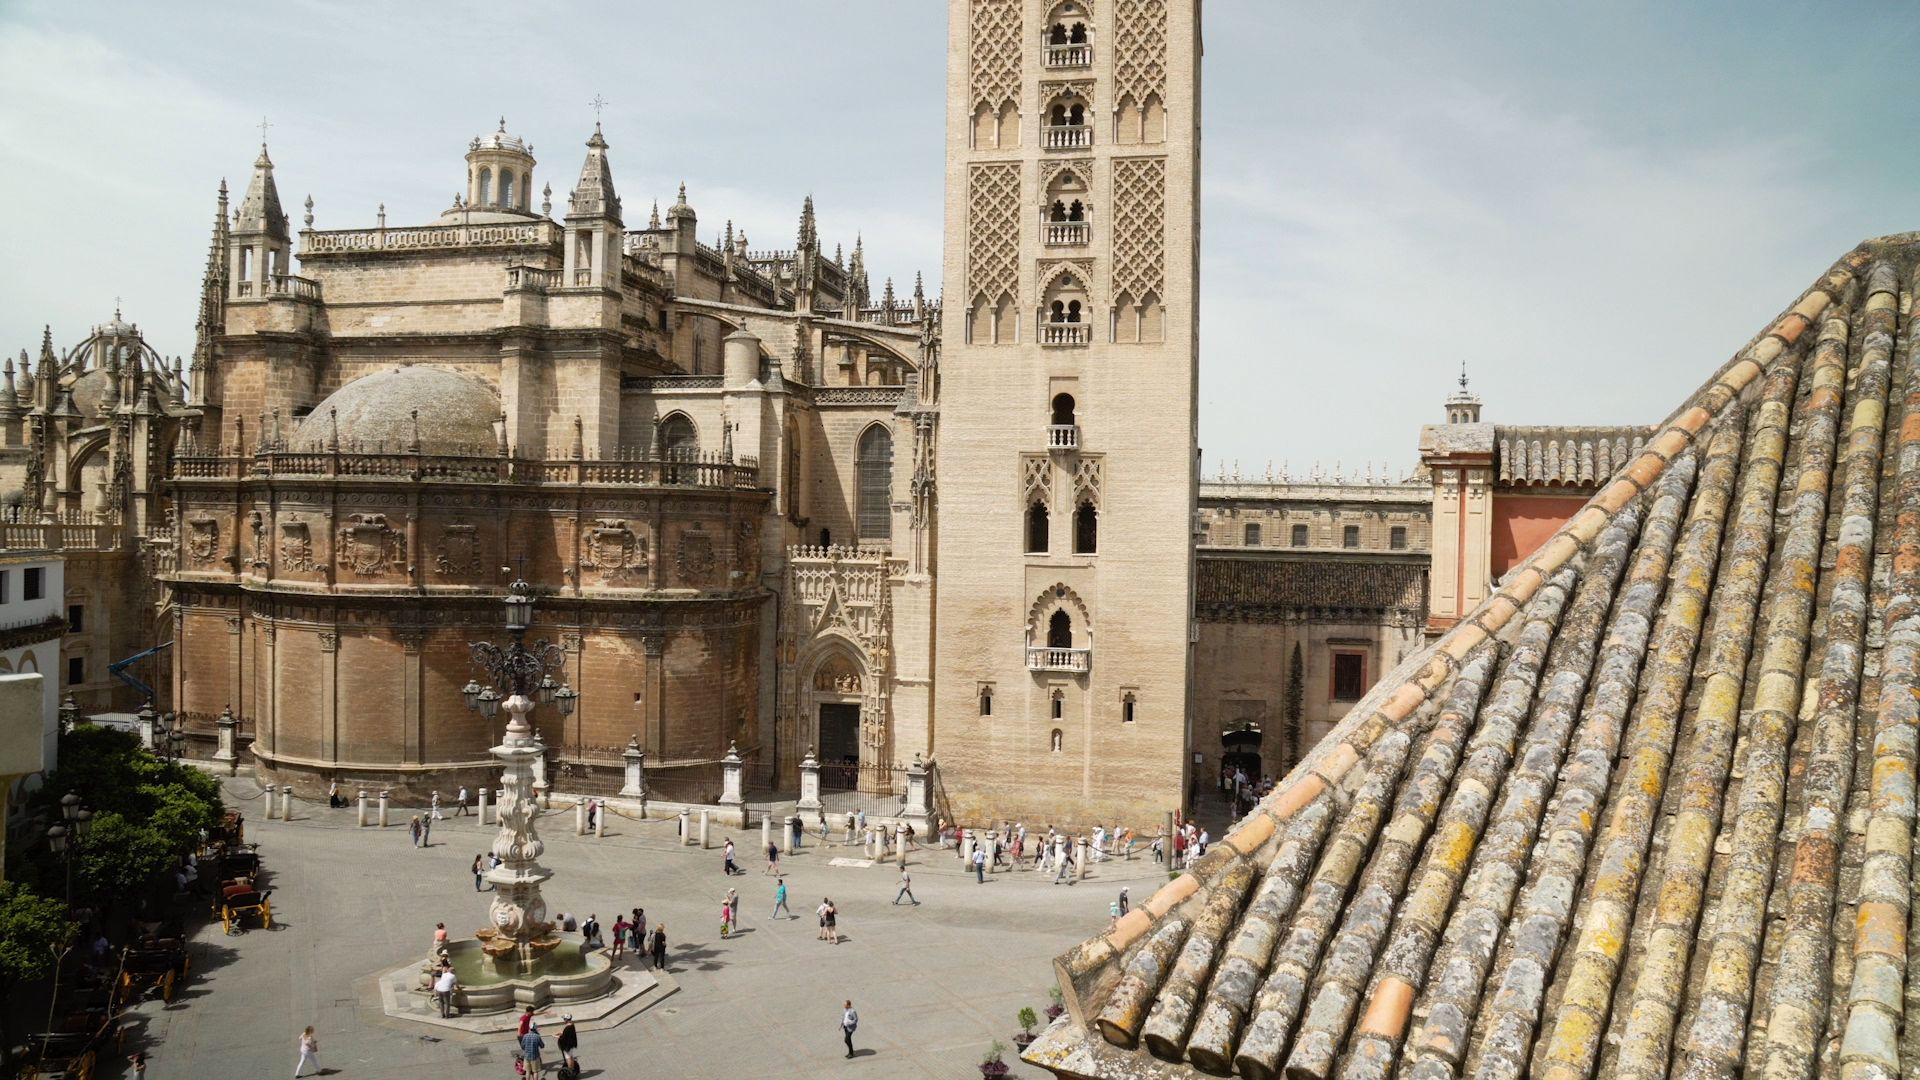 Seville Is The #1 City You Should Visit Next Year, According To Lonely Planet